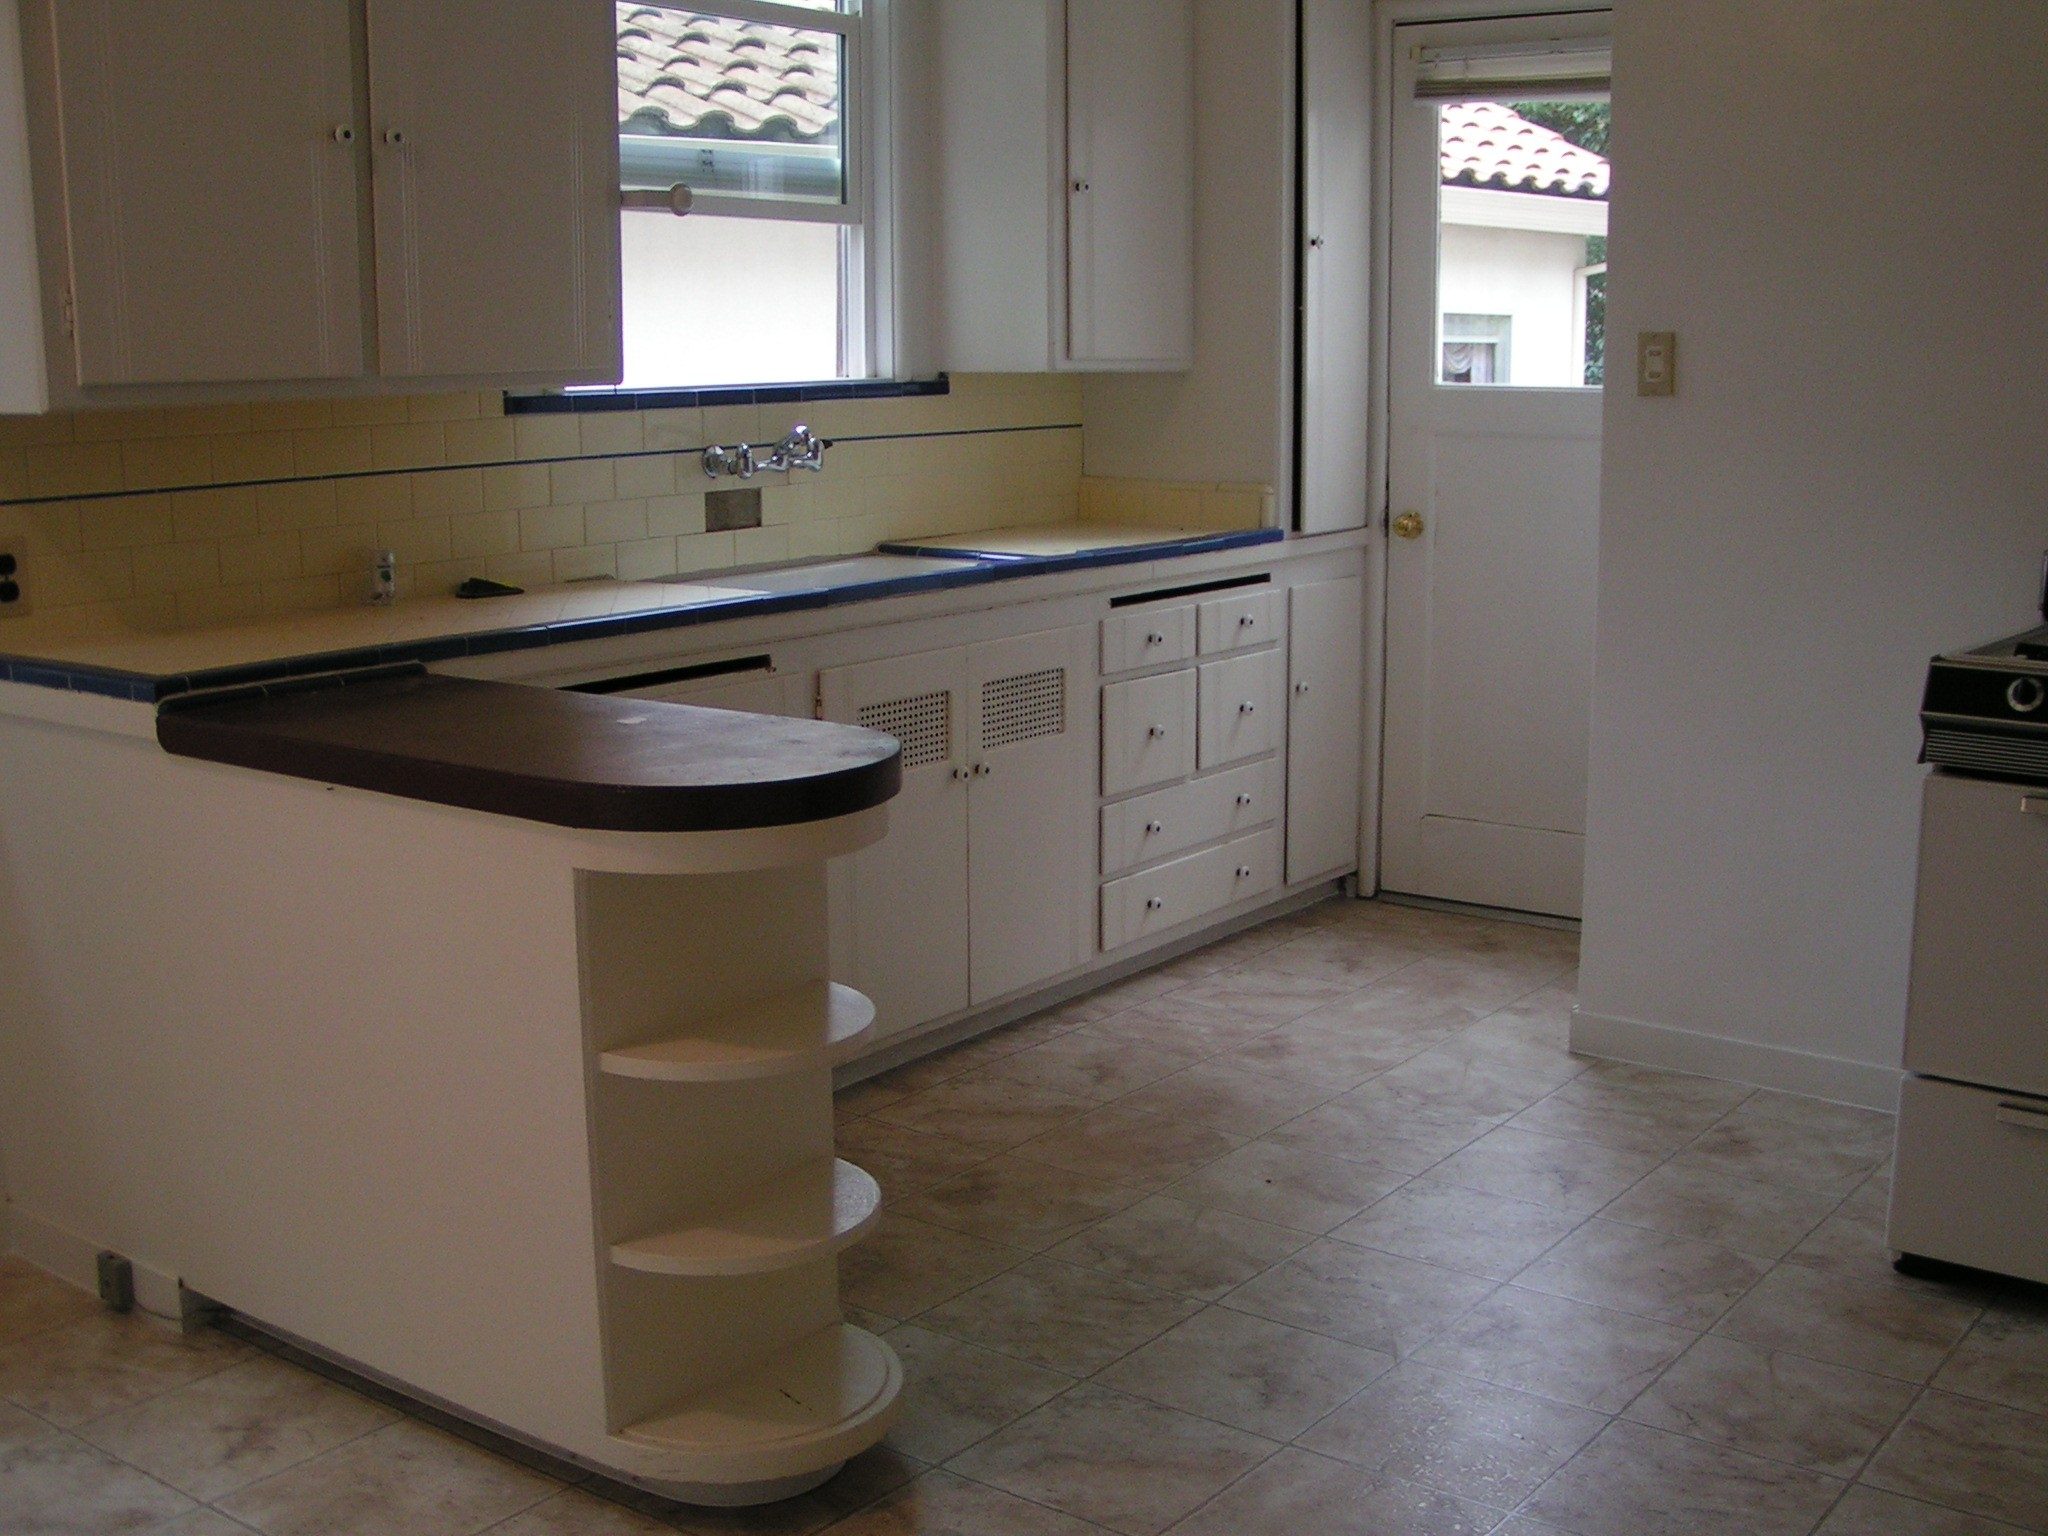 Simple Kitchen Design For Small Space: Kitchen Design And Remodeling Ideas With Images